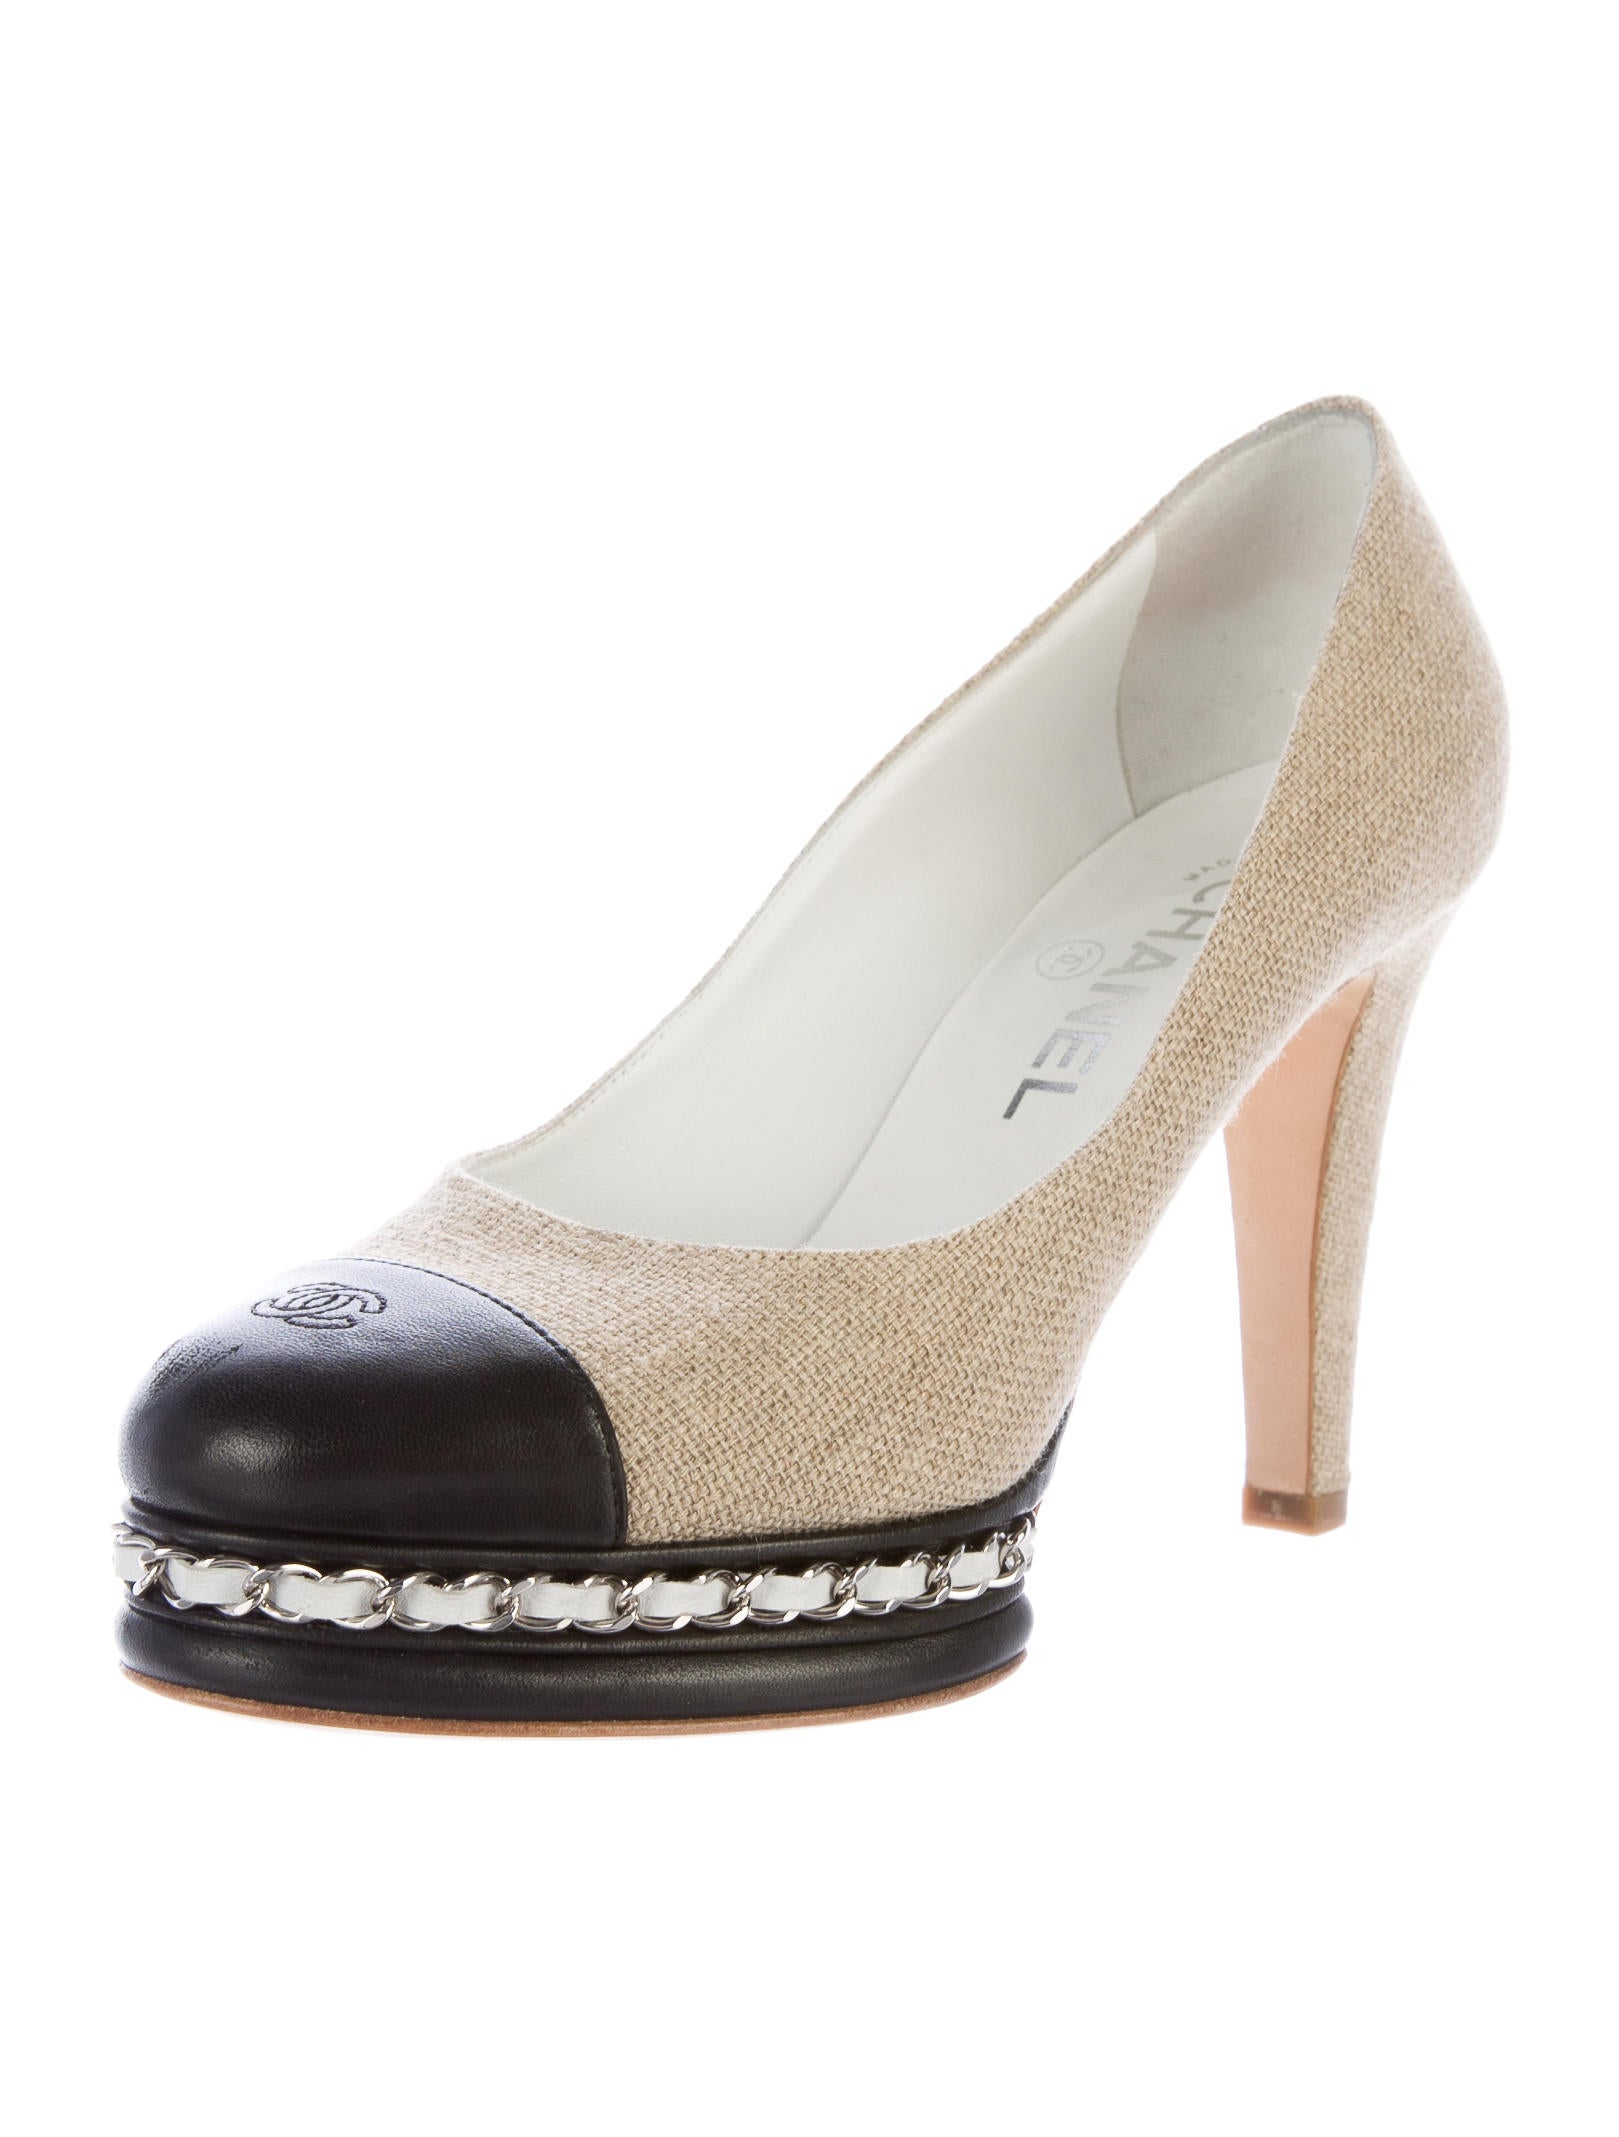 chanel canvas chain link pumps shoes cha163118 the